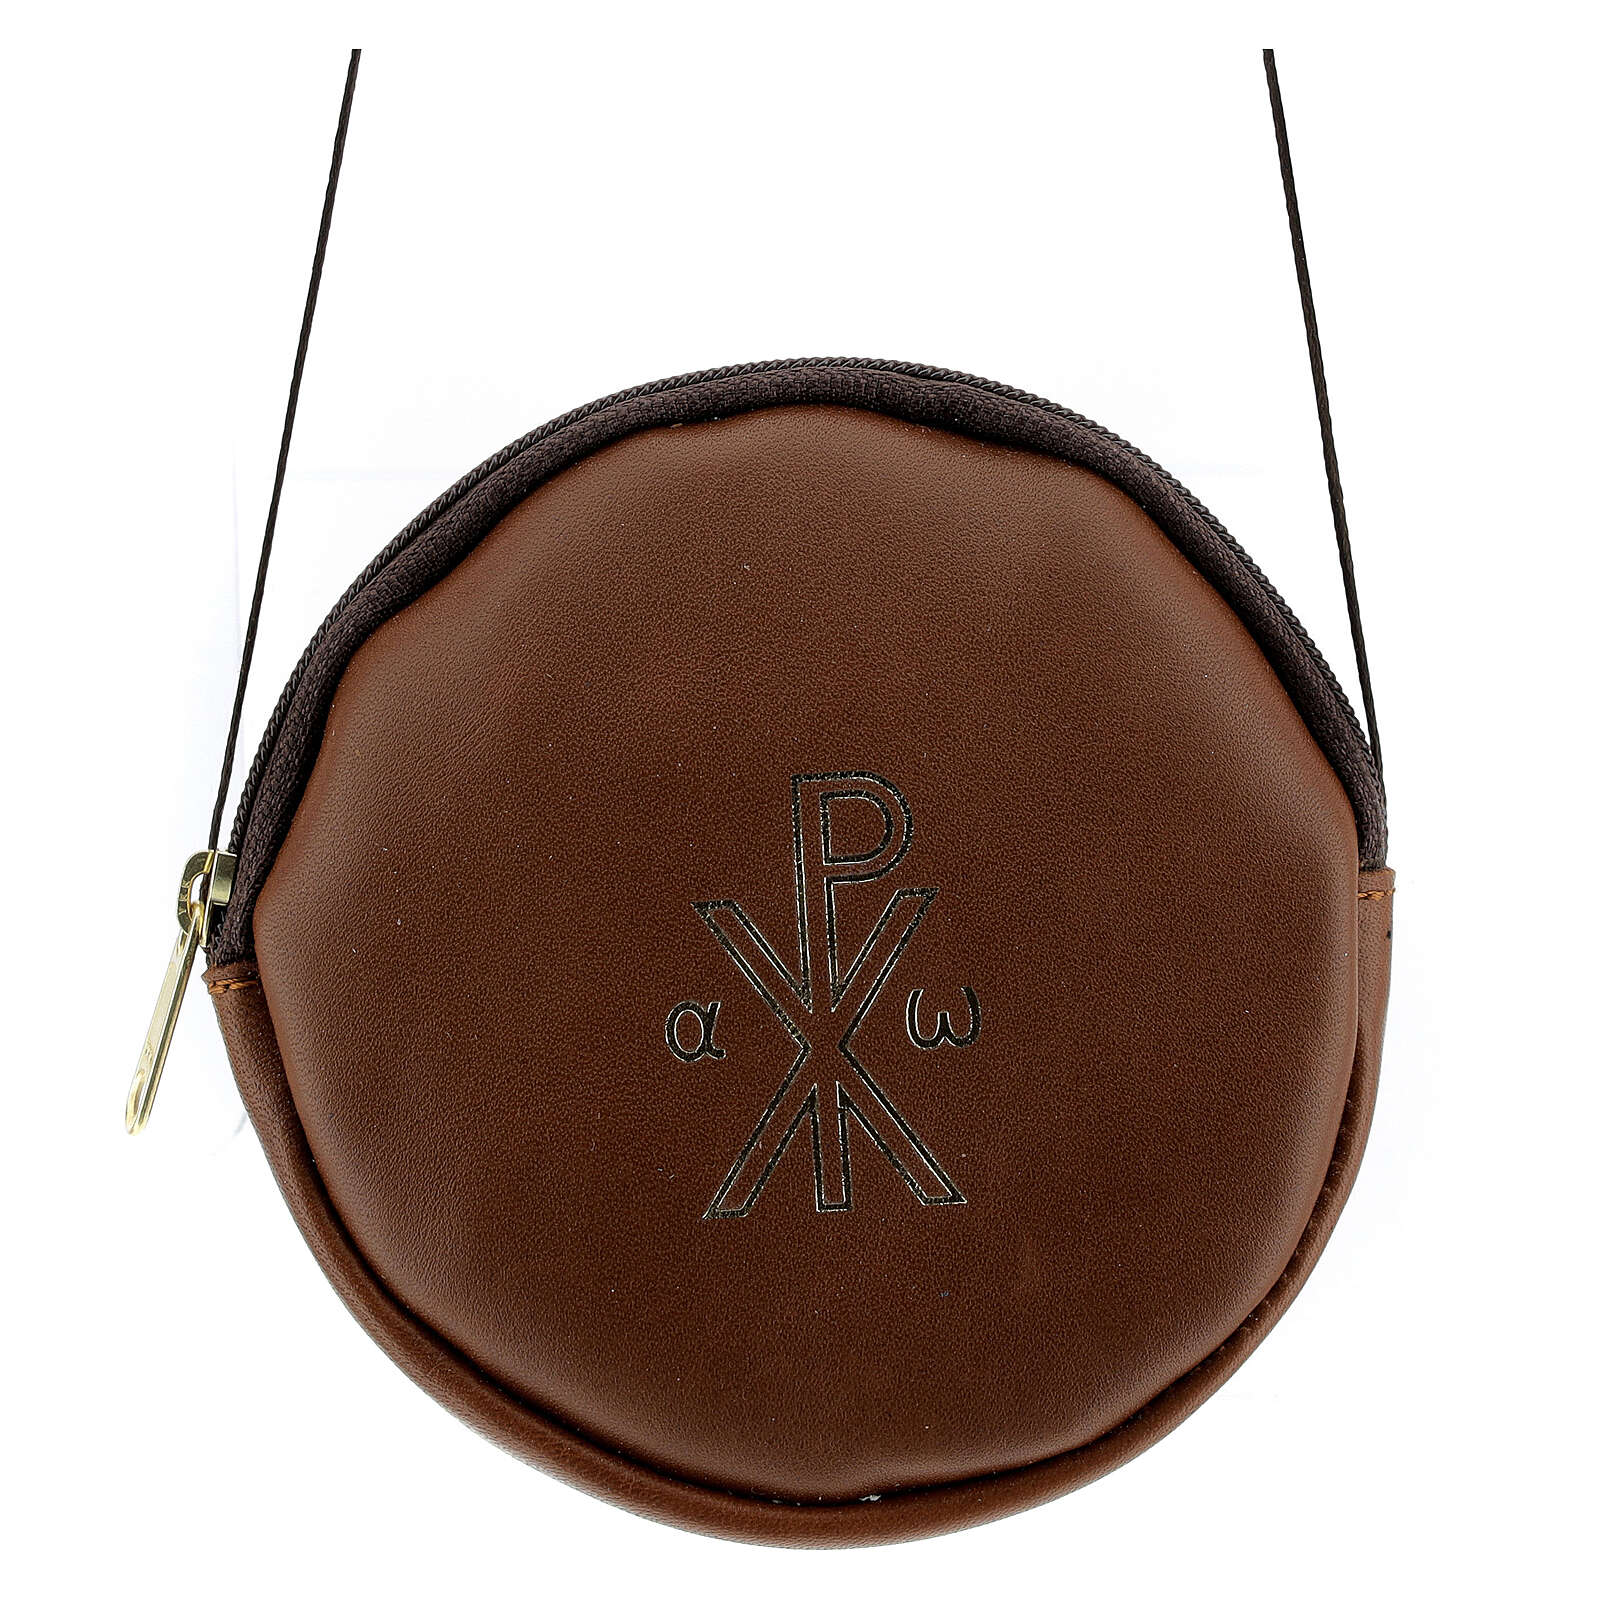 Paten case in real brown leather monogram Christ gold 12 cm 4